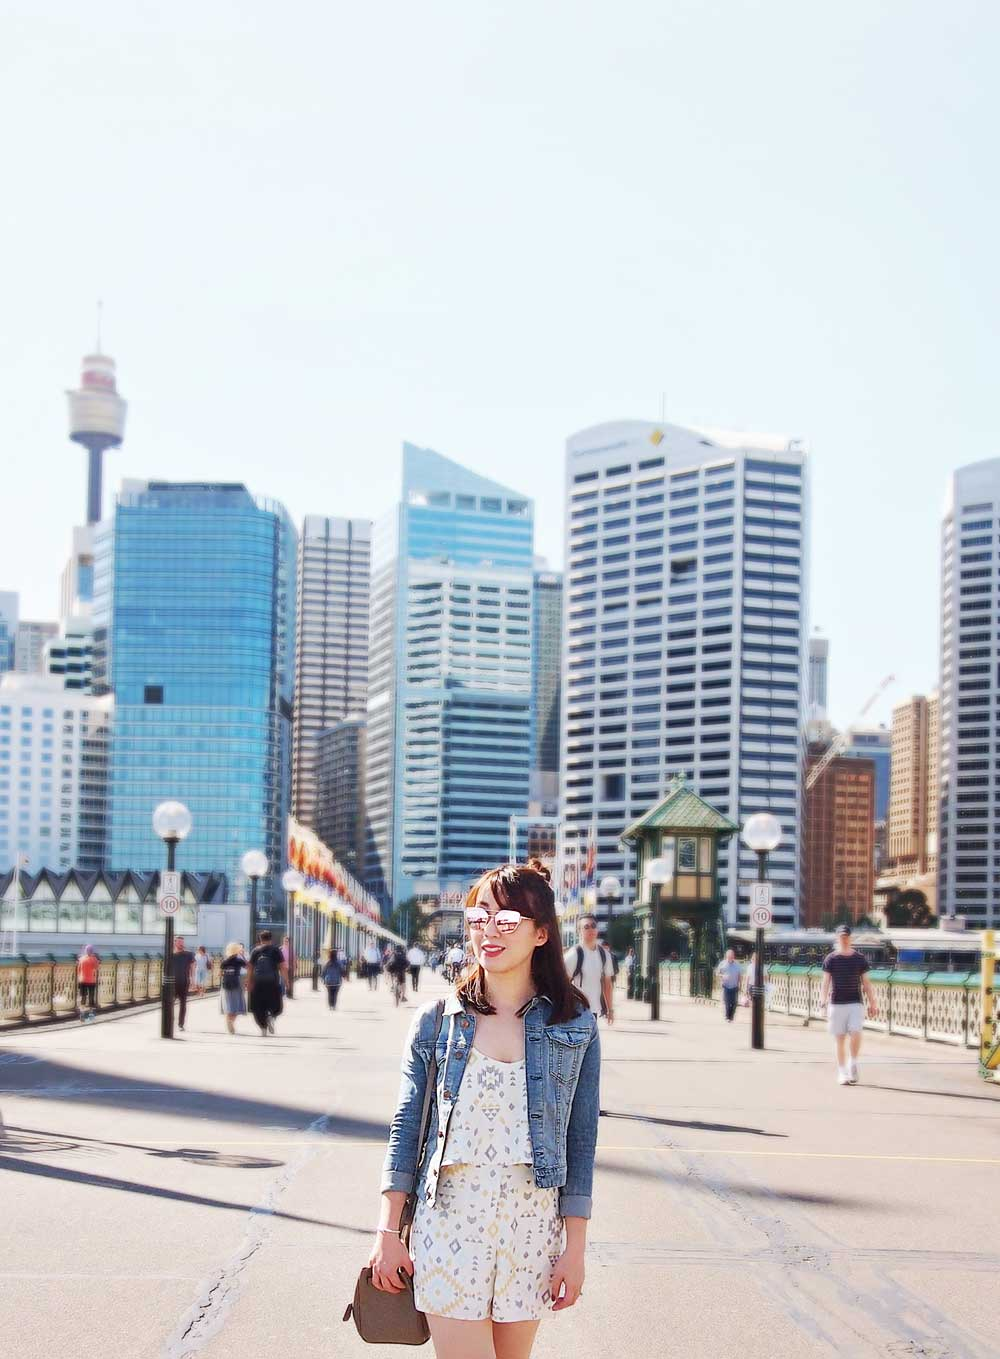 Darling Harbour -  Down Under Travel Guide: What You Can Eat and Do in Sydney